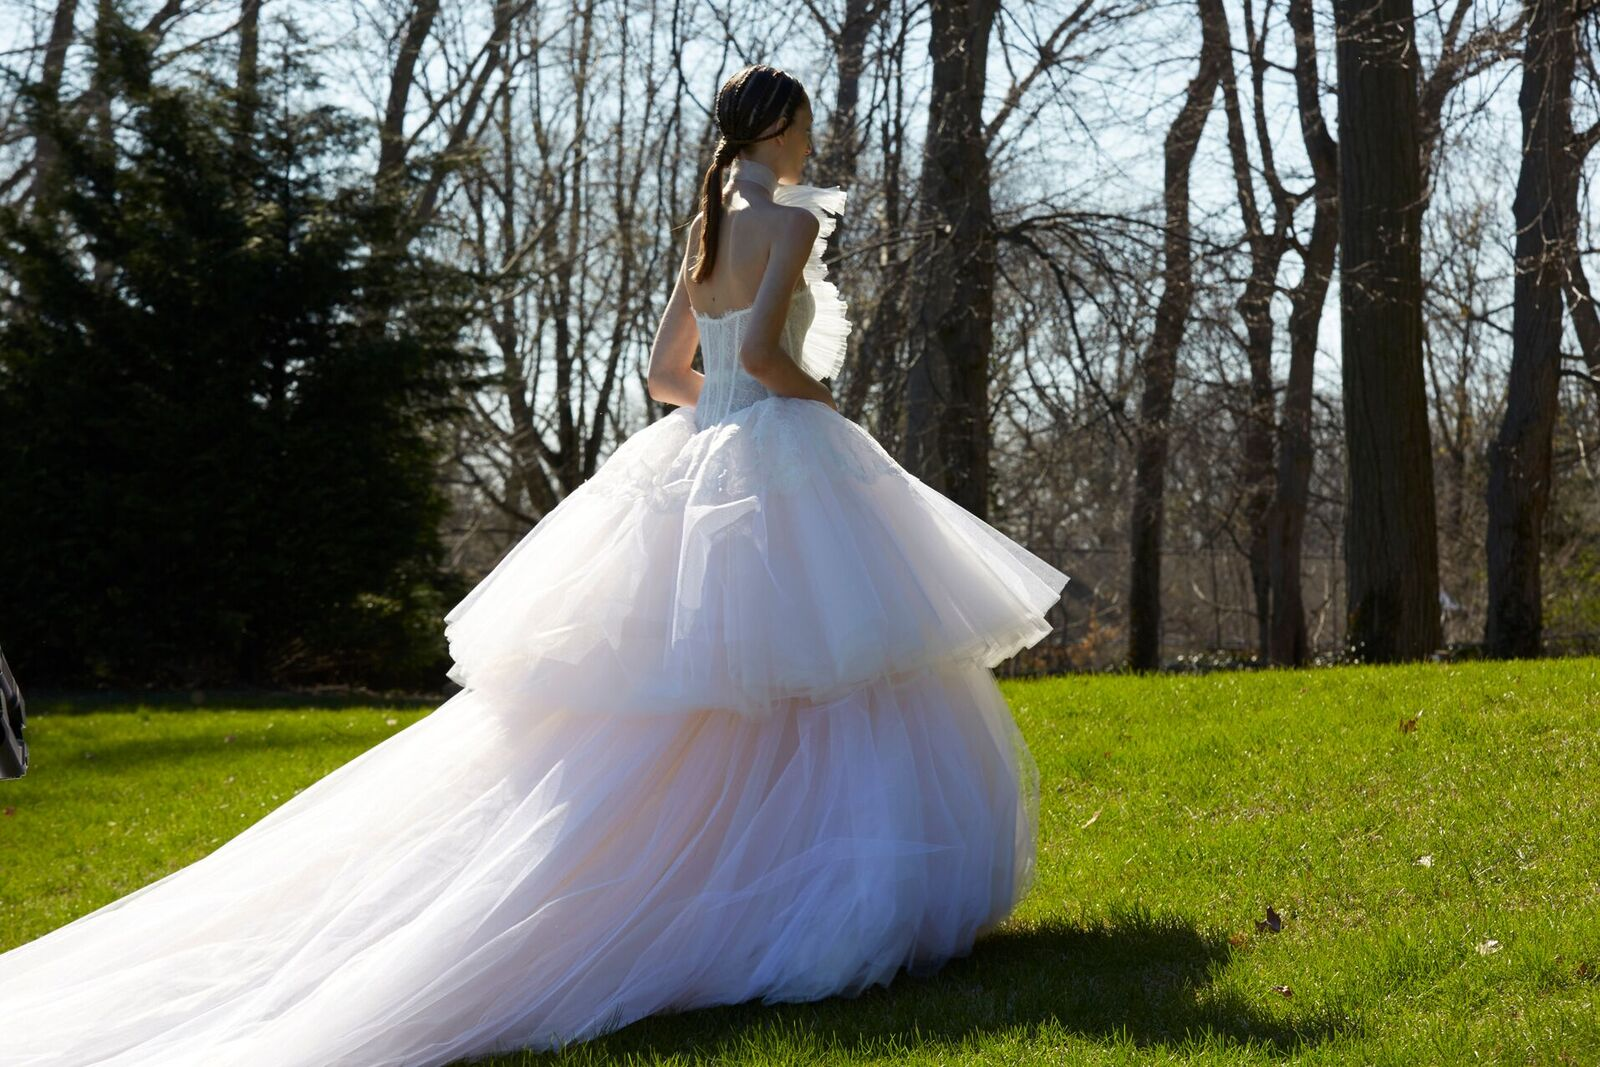 THE DRESS: Vera Wang weds fairytale and fashion in a corset bodice that explodes into a cloud of a double-tiered ballgown skirt.